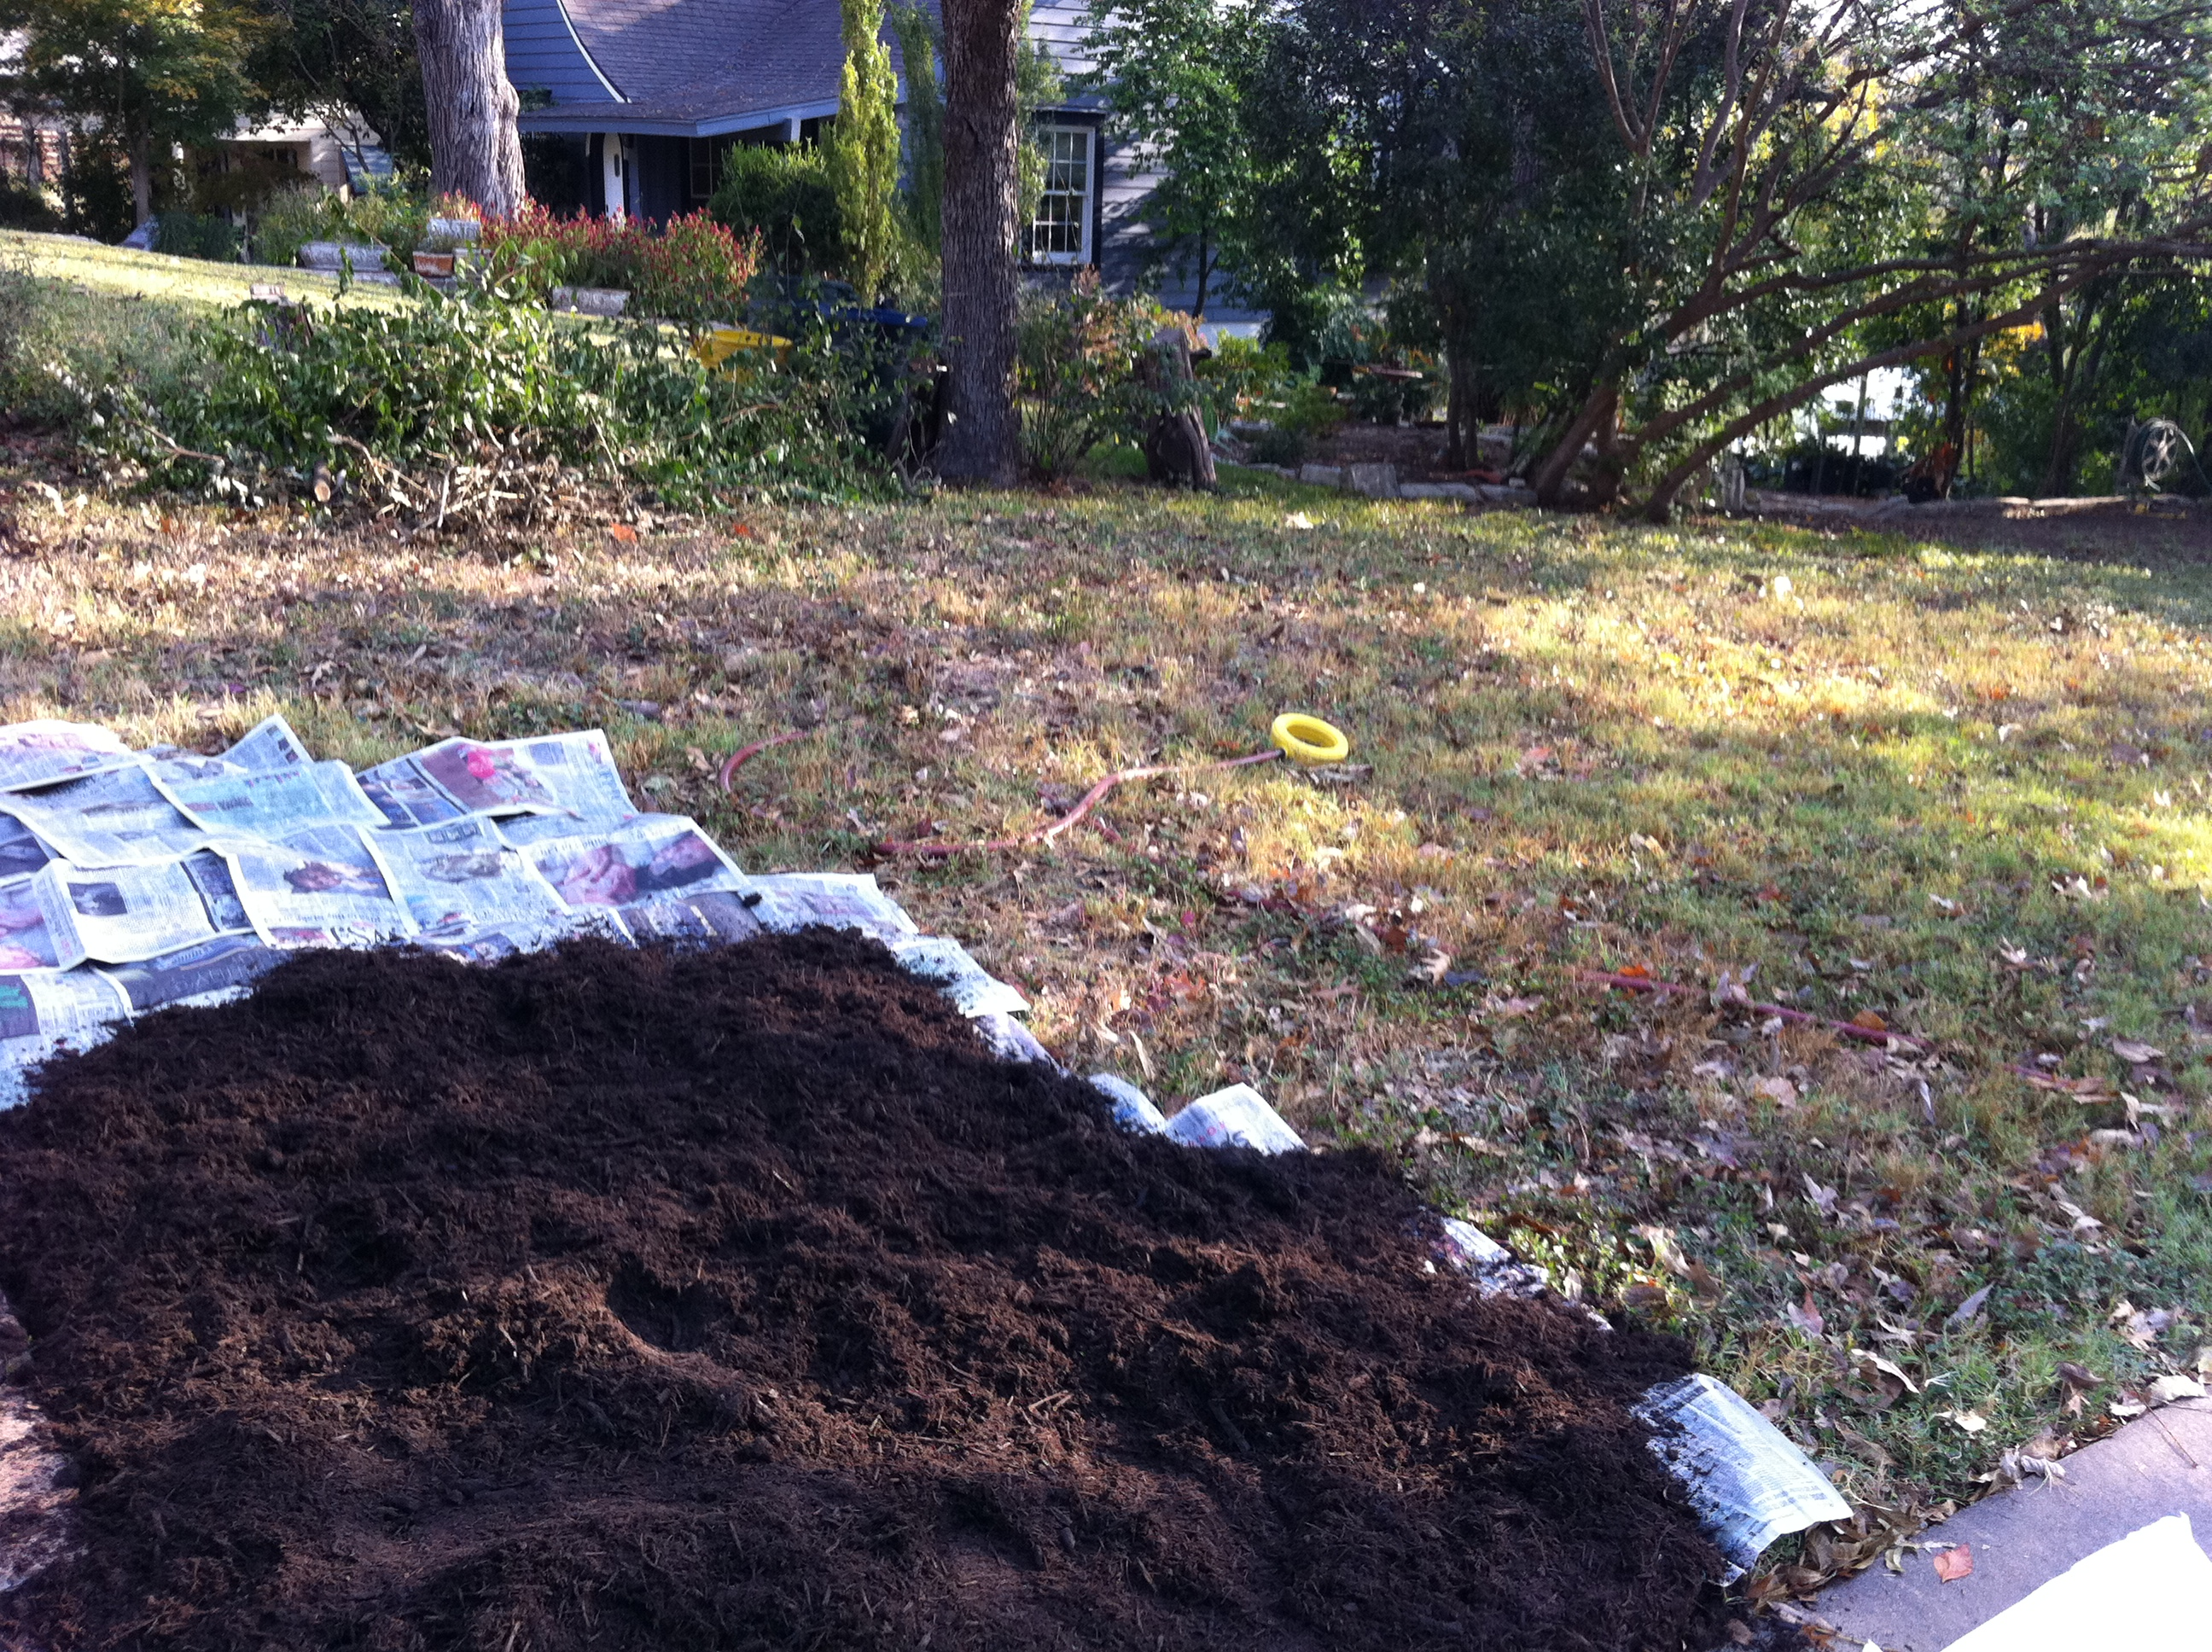 Turf-to-bed conversion: six-10 layers of newspaper with three-four inches of mulch